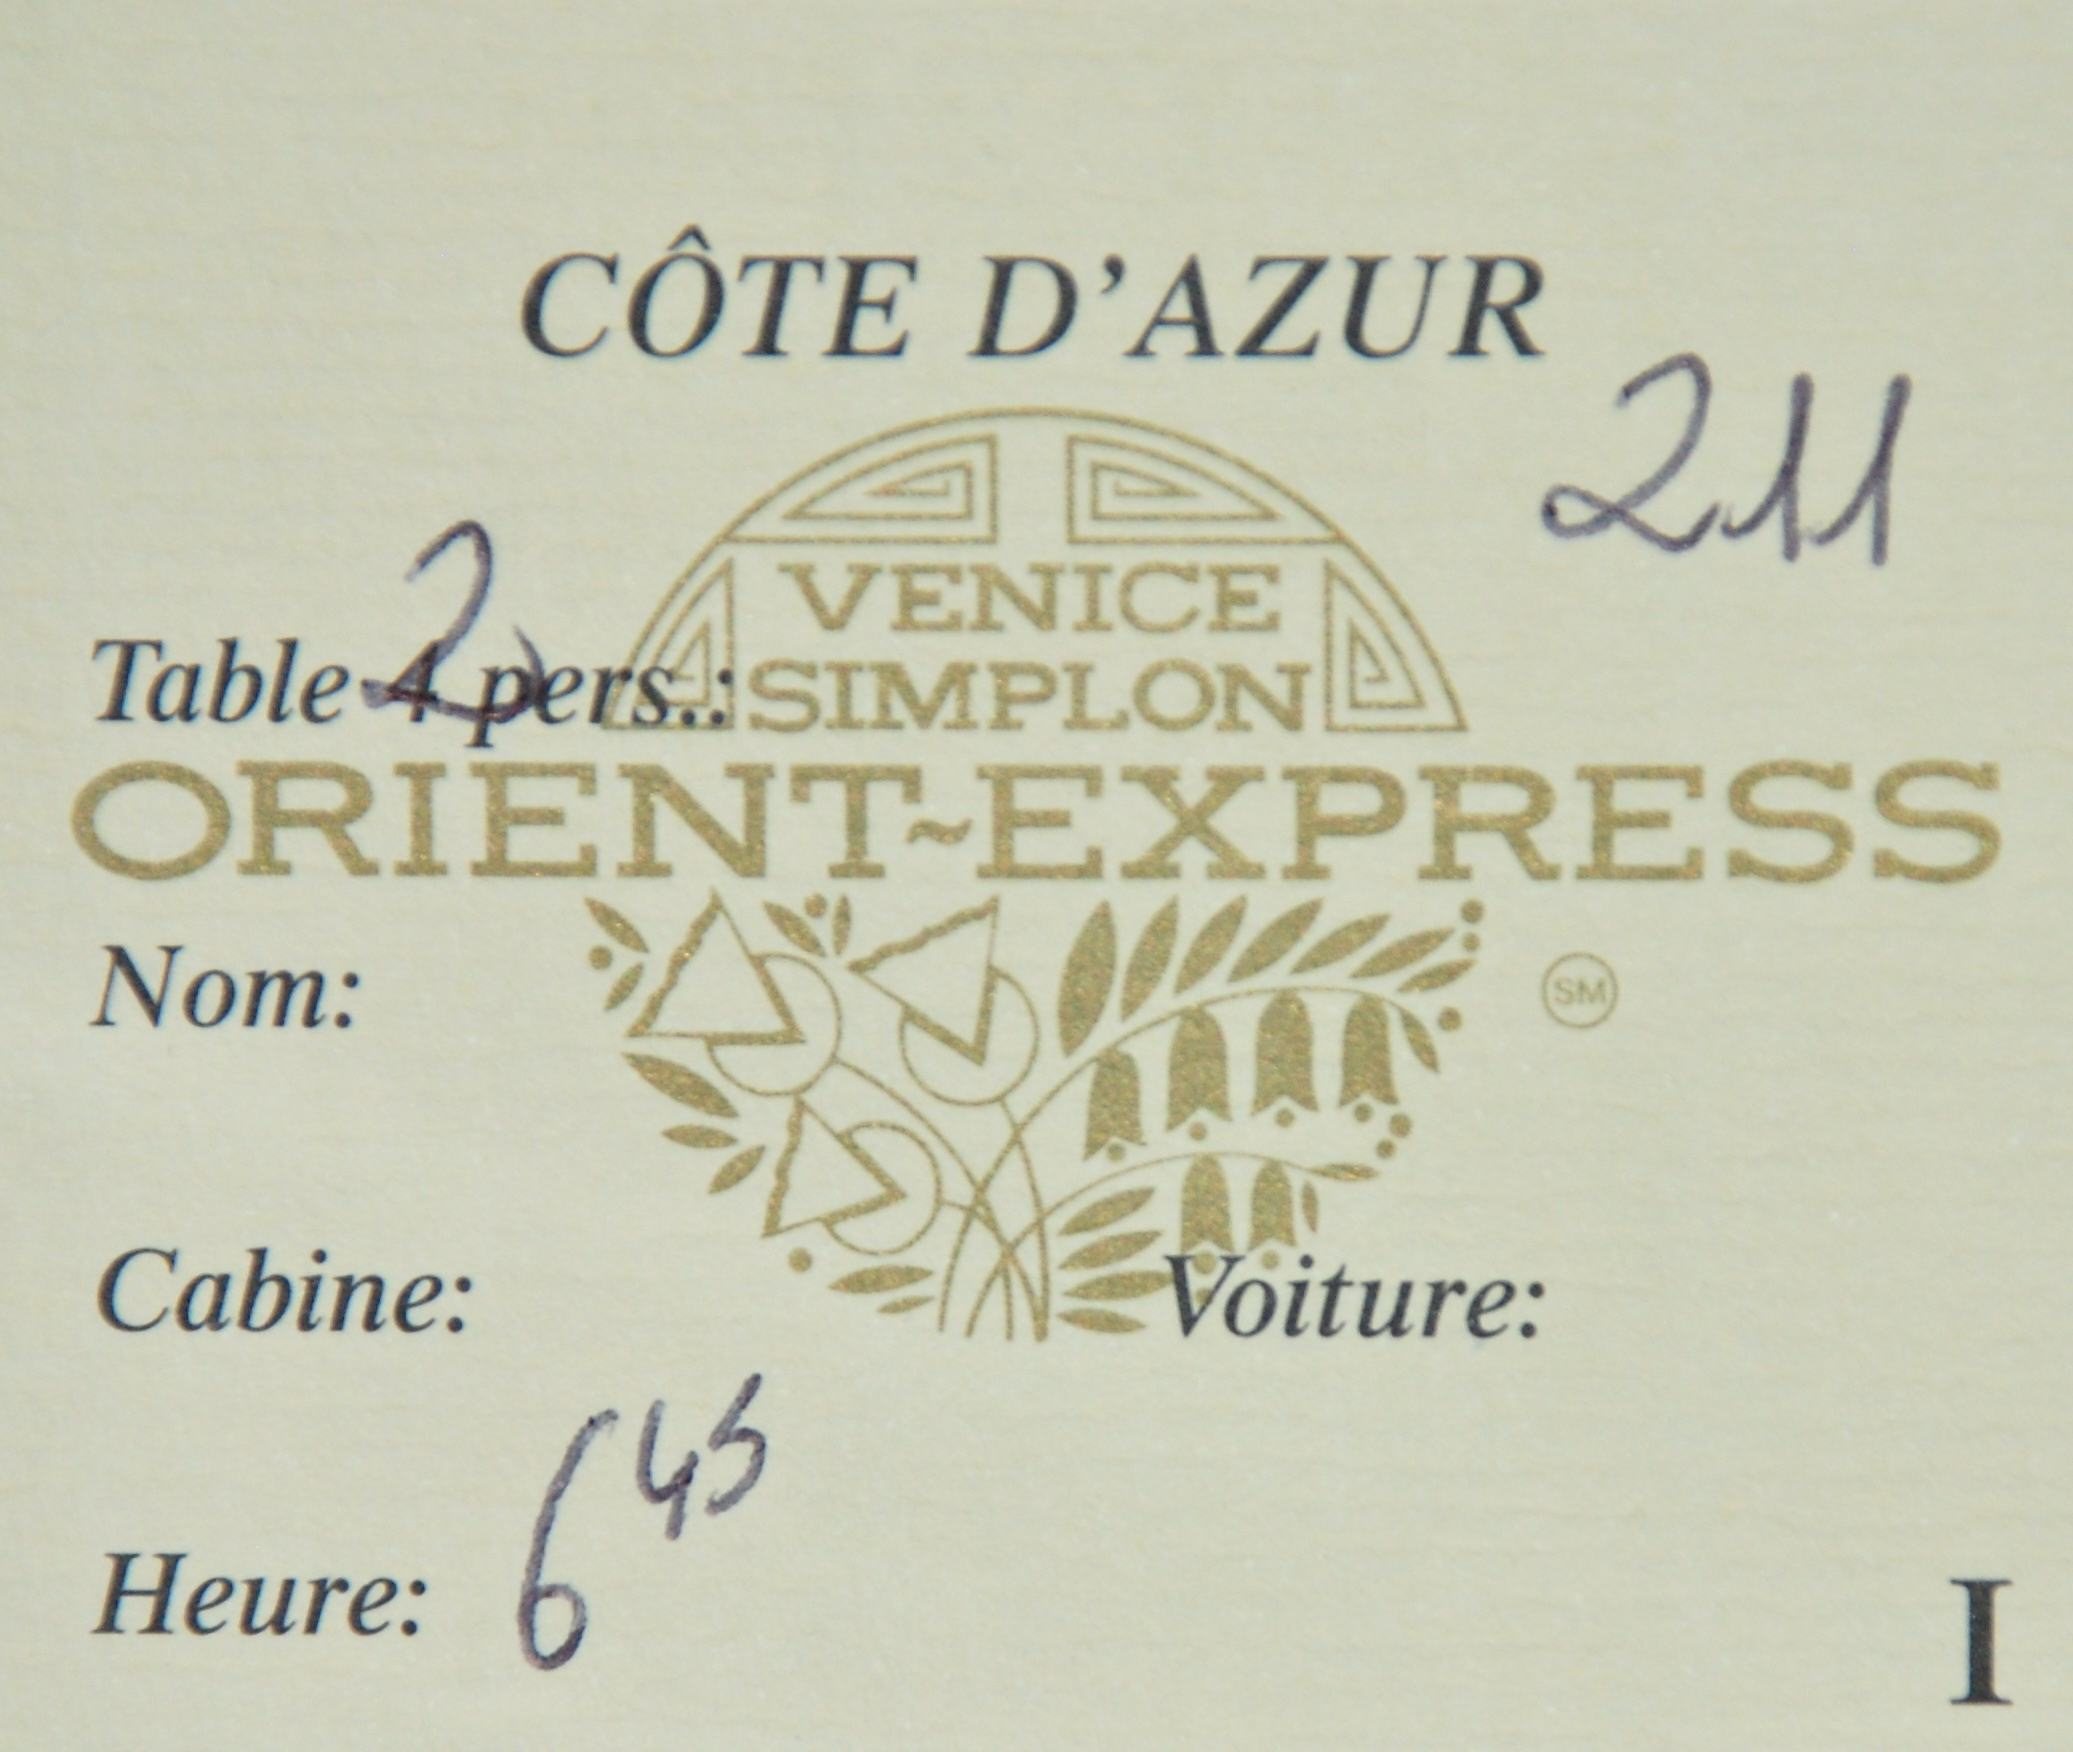 Our dining reservation card on the Venice Simplon-Orient-Express